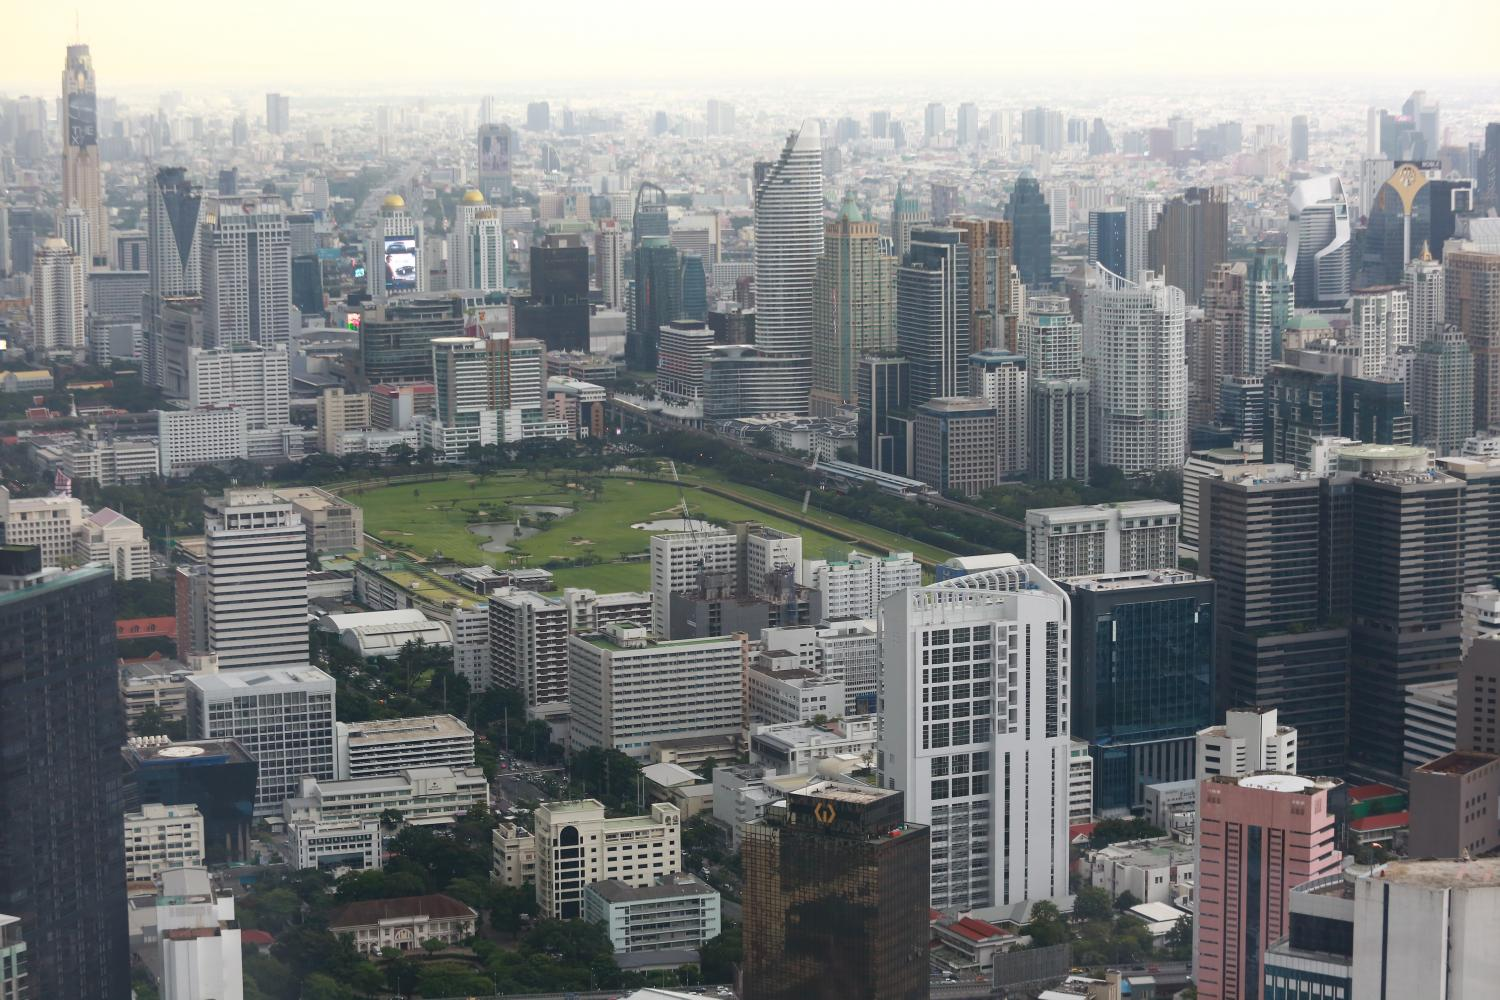 An aerial view of Bangkok's central business district with high-rise residential and office buildings.Somchai Poomlard